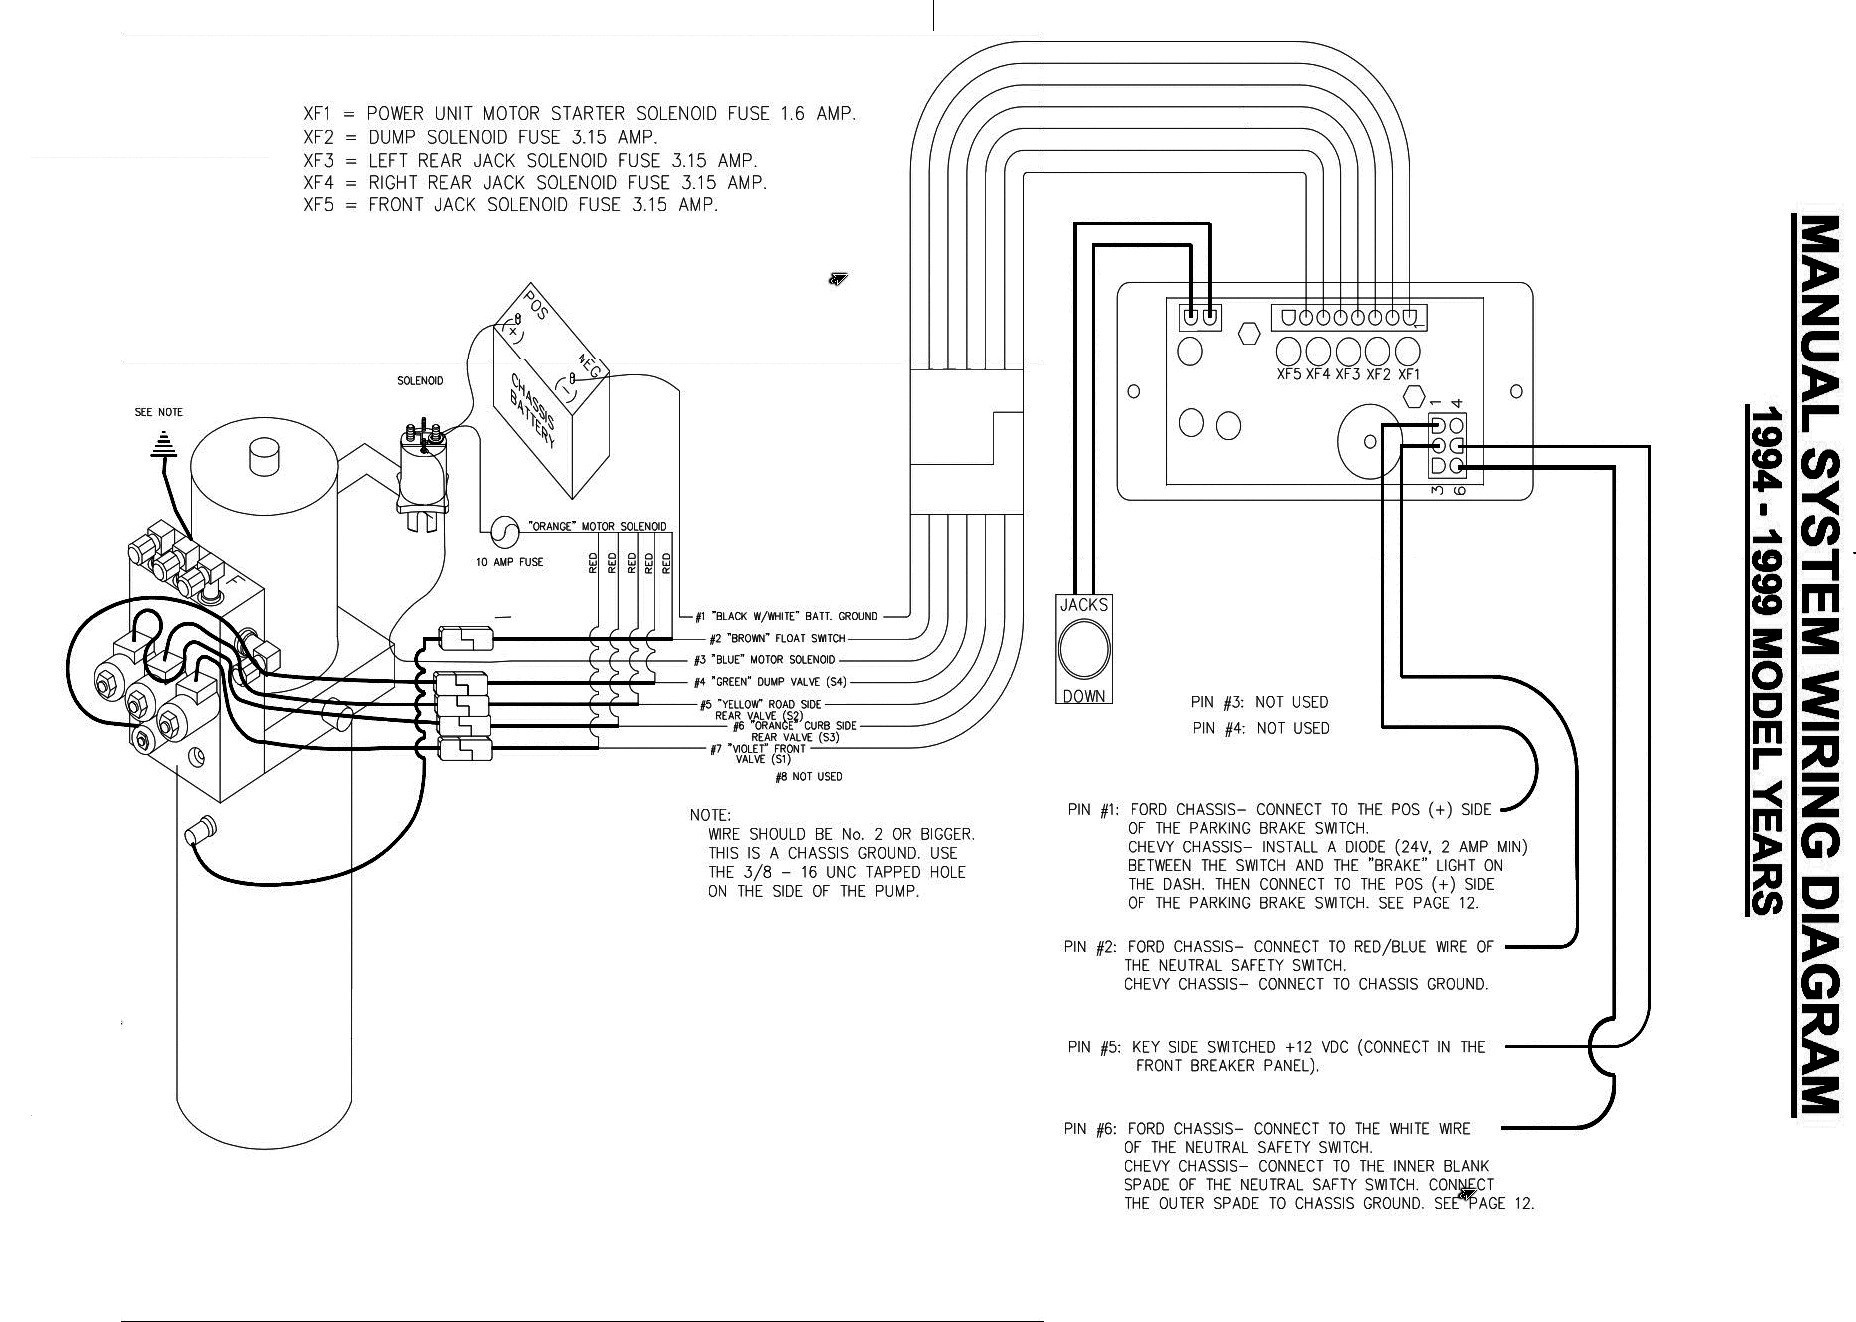 hight resolution of wiring diagram wwwjustanswercom chevy 34ovlsparkplugwire 700r4 transmission valve body diagrams http wwwjustanswercom chevy